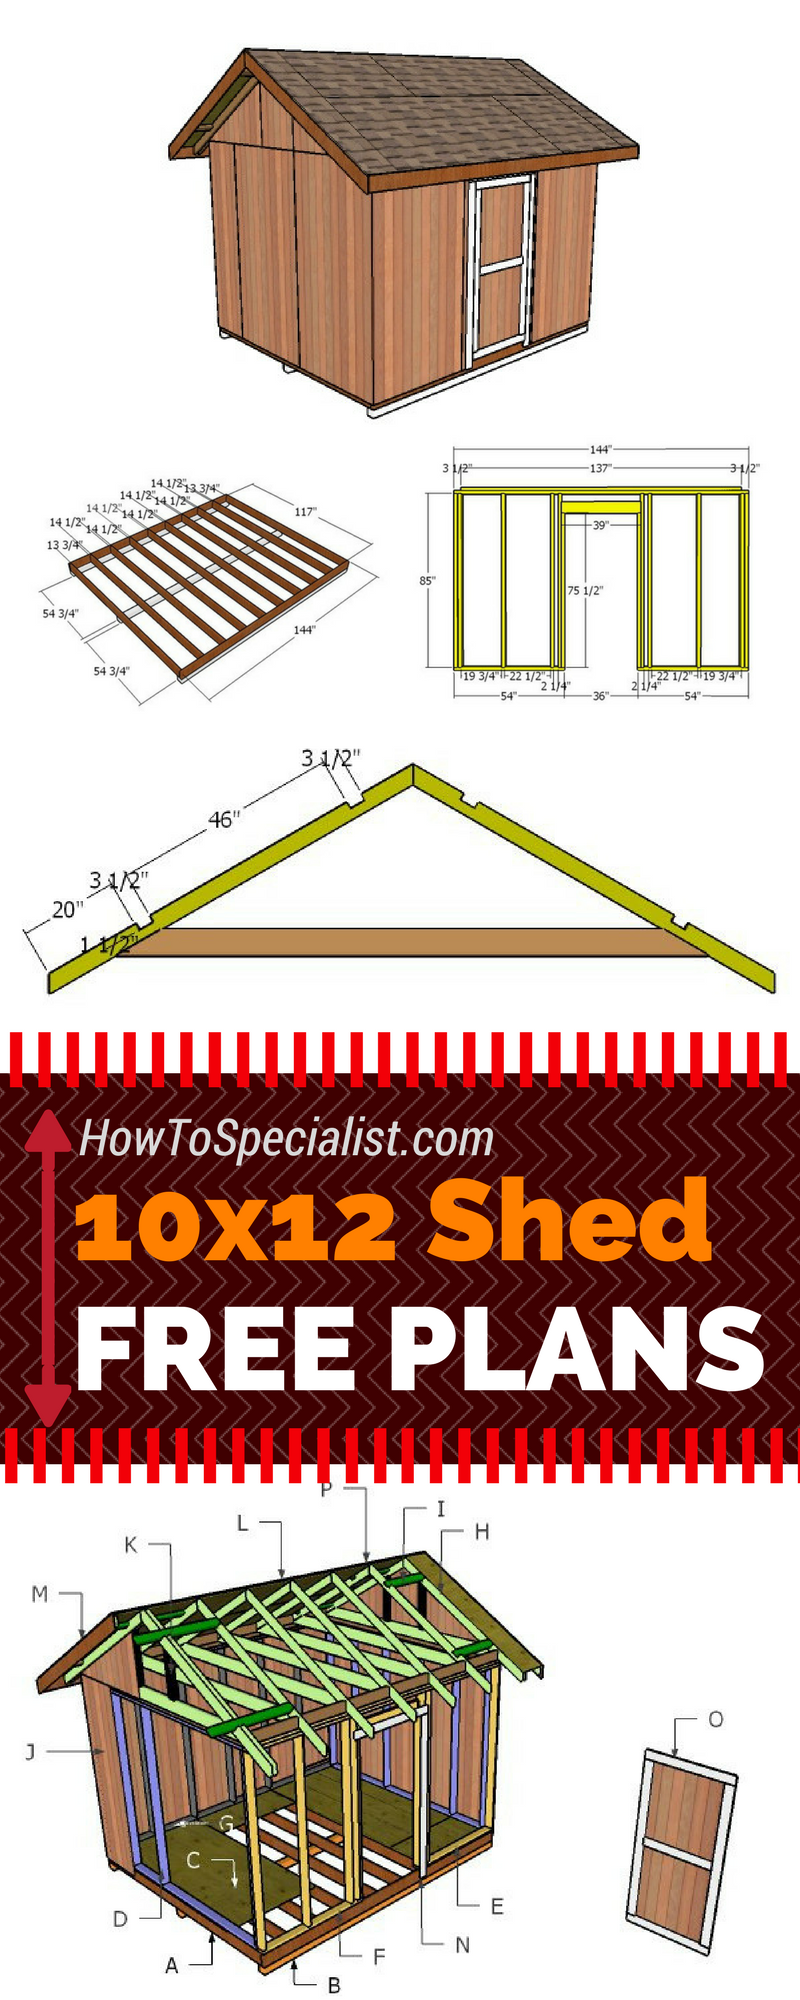 Learn How To Build A 10x12 Shed With My Free And Step By Step Plans!